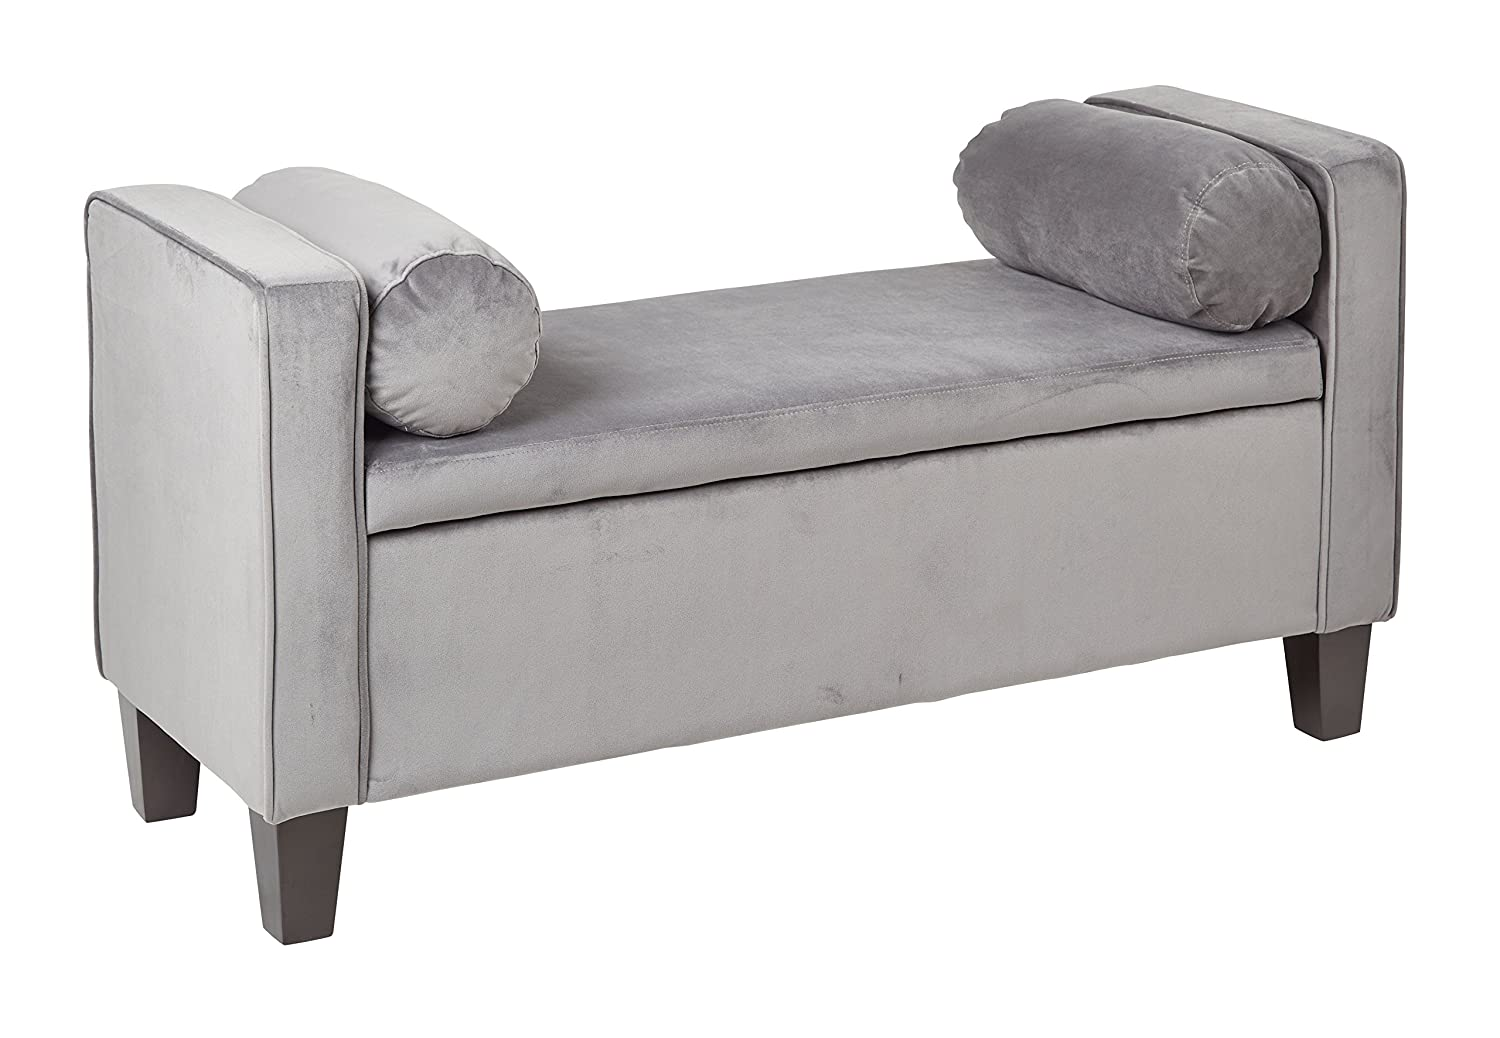 larger view and click image storage views more bench to ottoman traditional fabric large grey upholstered mouse